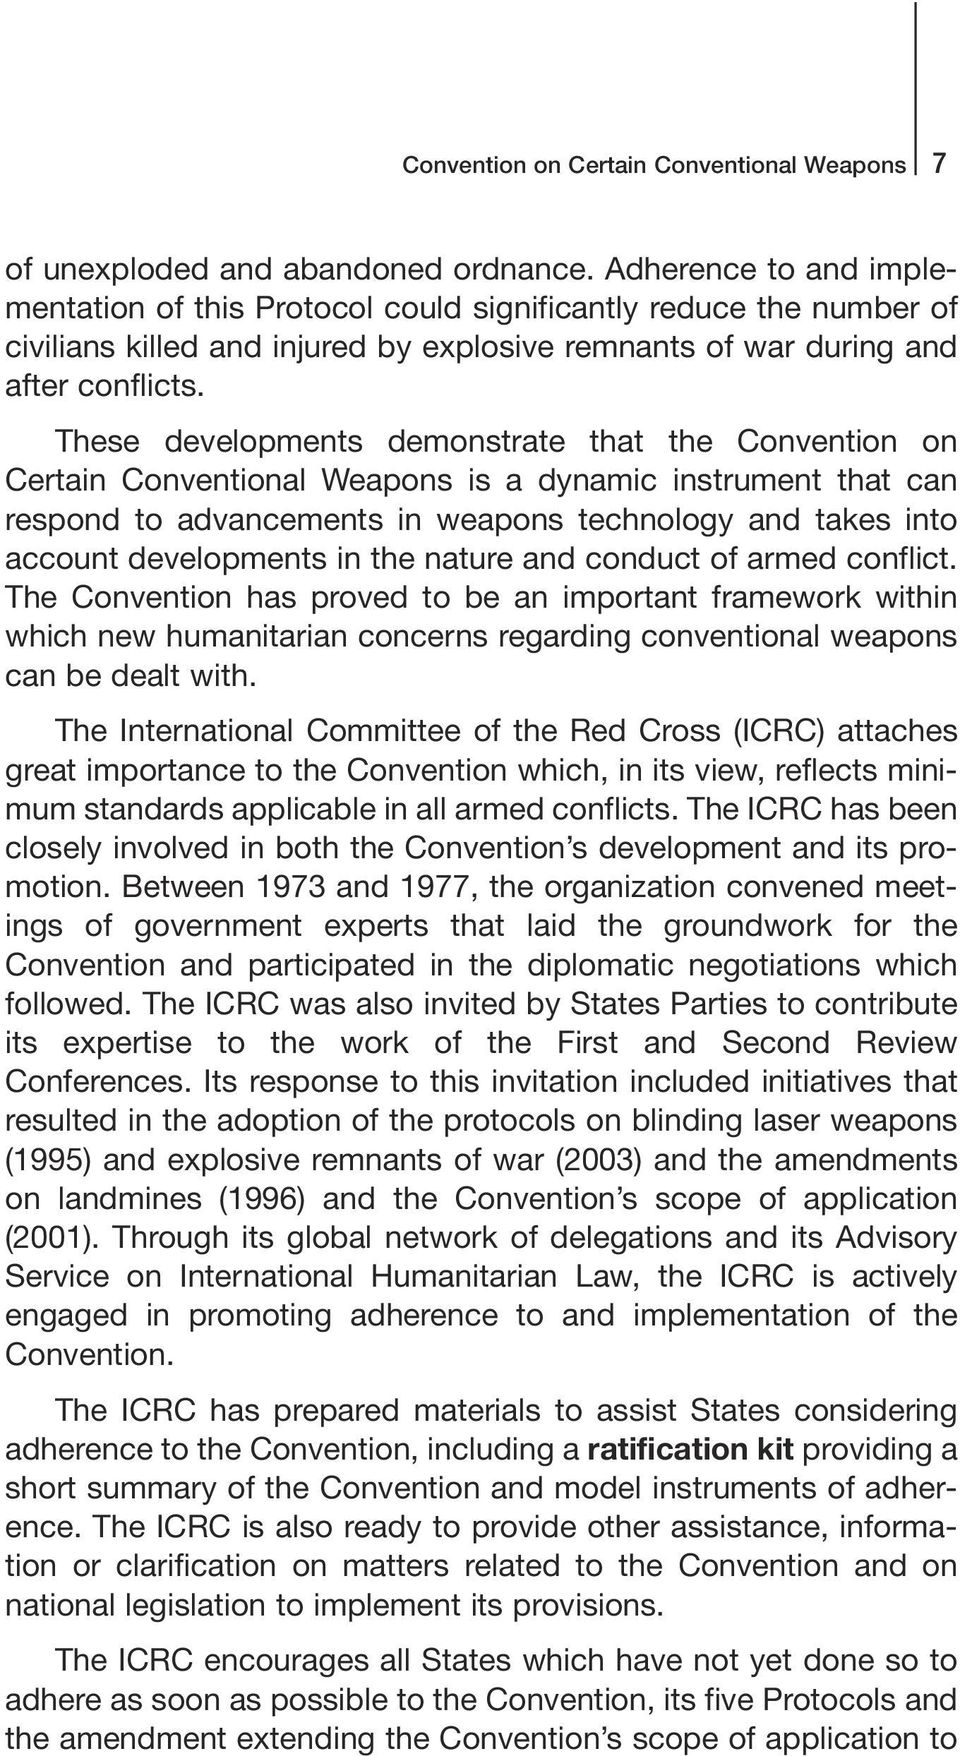 These developments demonstrate that the Convention on Certain Conventional Weapons is a dynamic instrument that can respond to advancements in weapons technology and takes into account developments